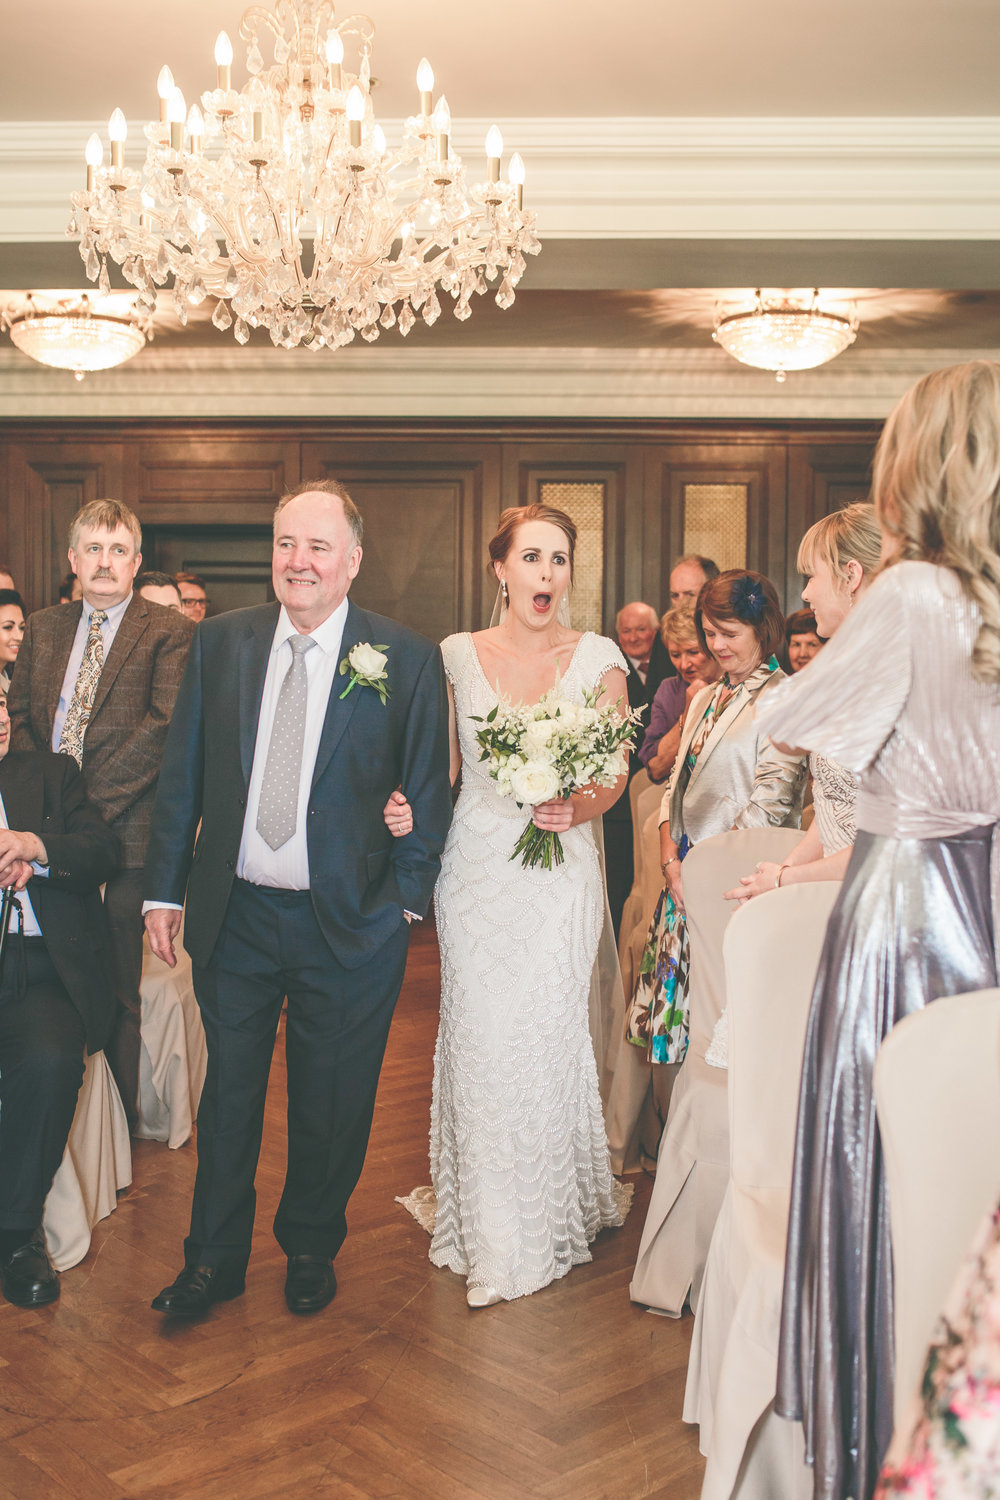 Father of the bride, Castlemartyr Resort wedding, Ireland.